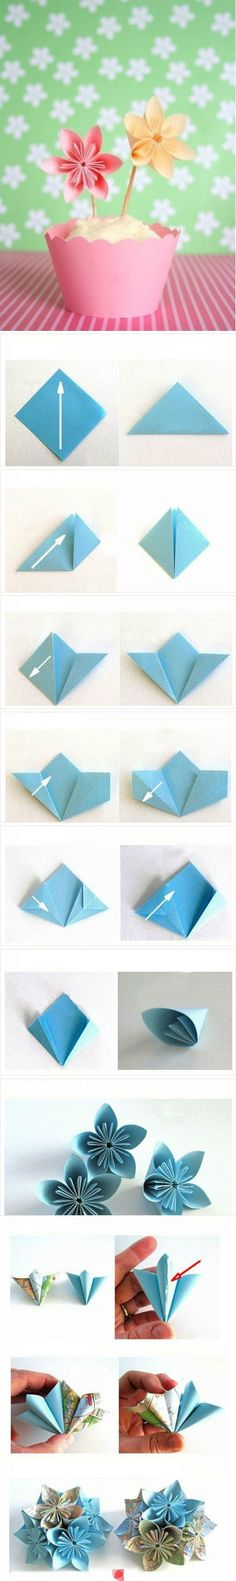 DIY Origami Paper Flower #diy #craft #origami